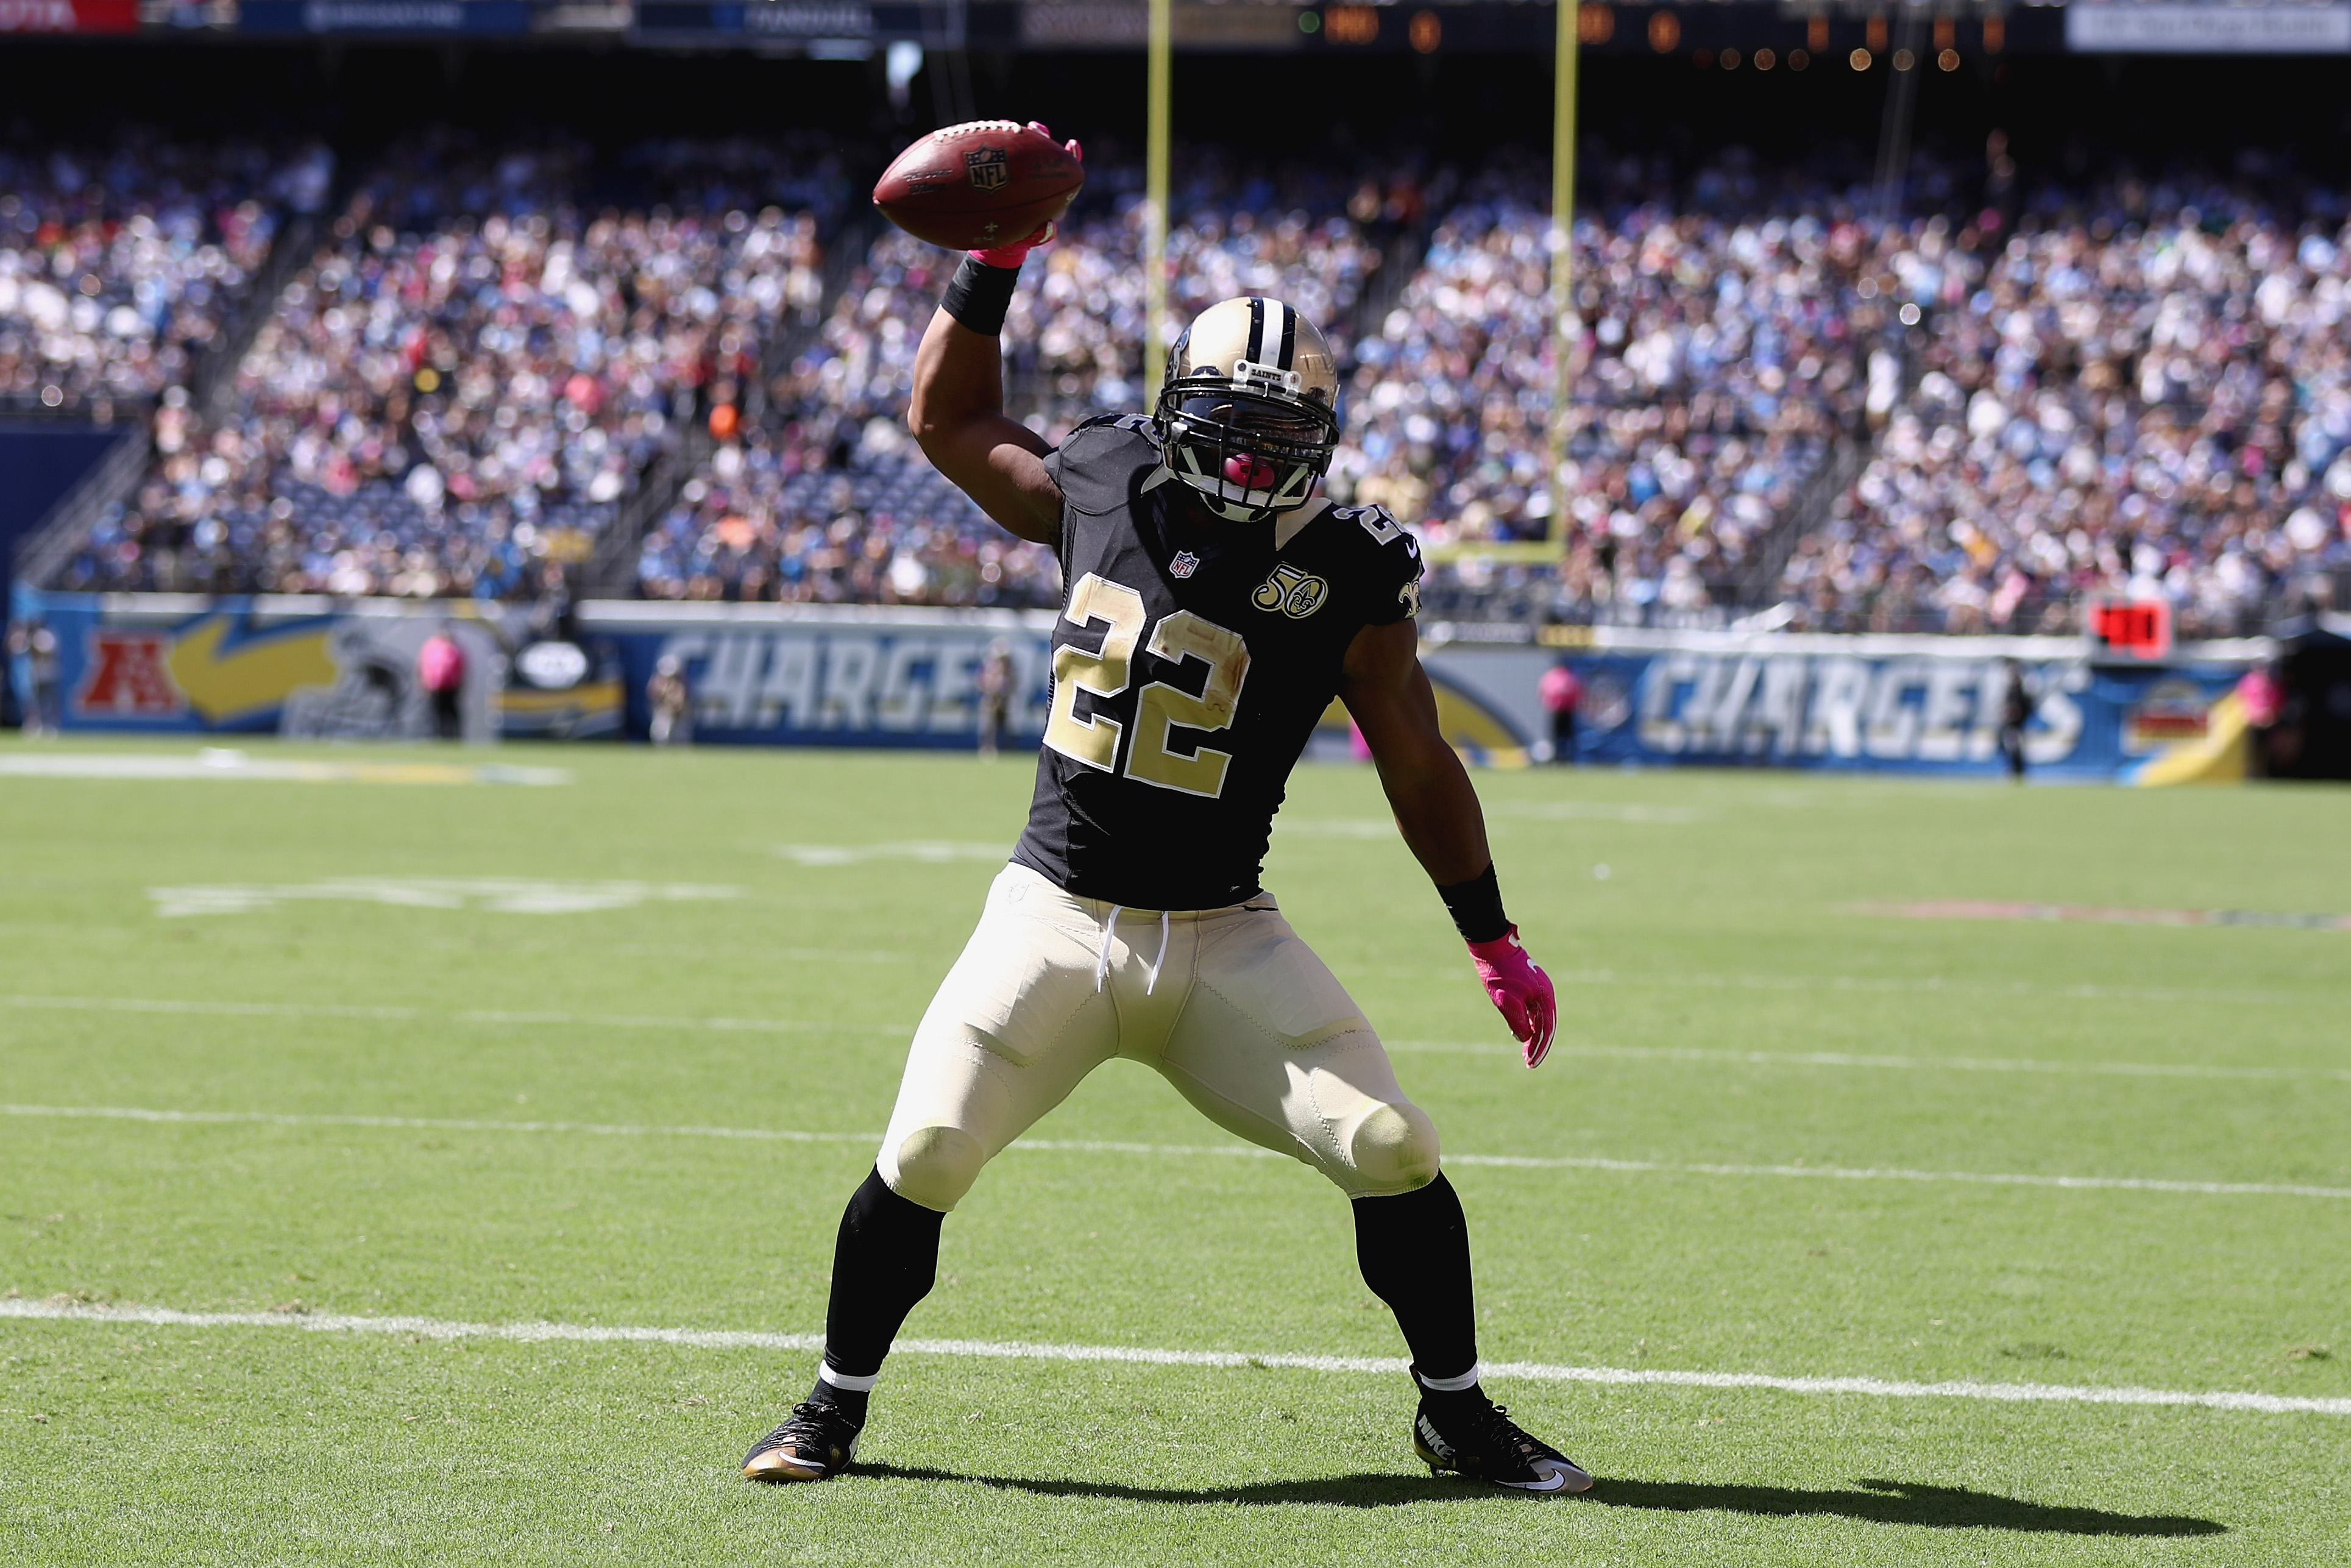 Saints' Mark Ingram needs a fire lit under him: Perhaps Gil Fenerty and Wilmont Perry can light it